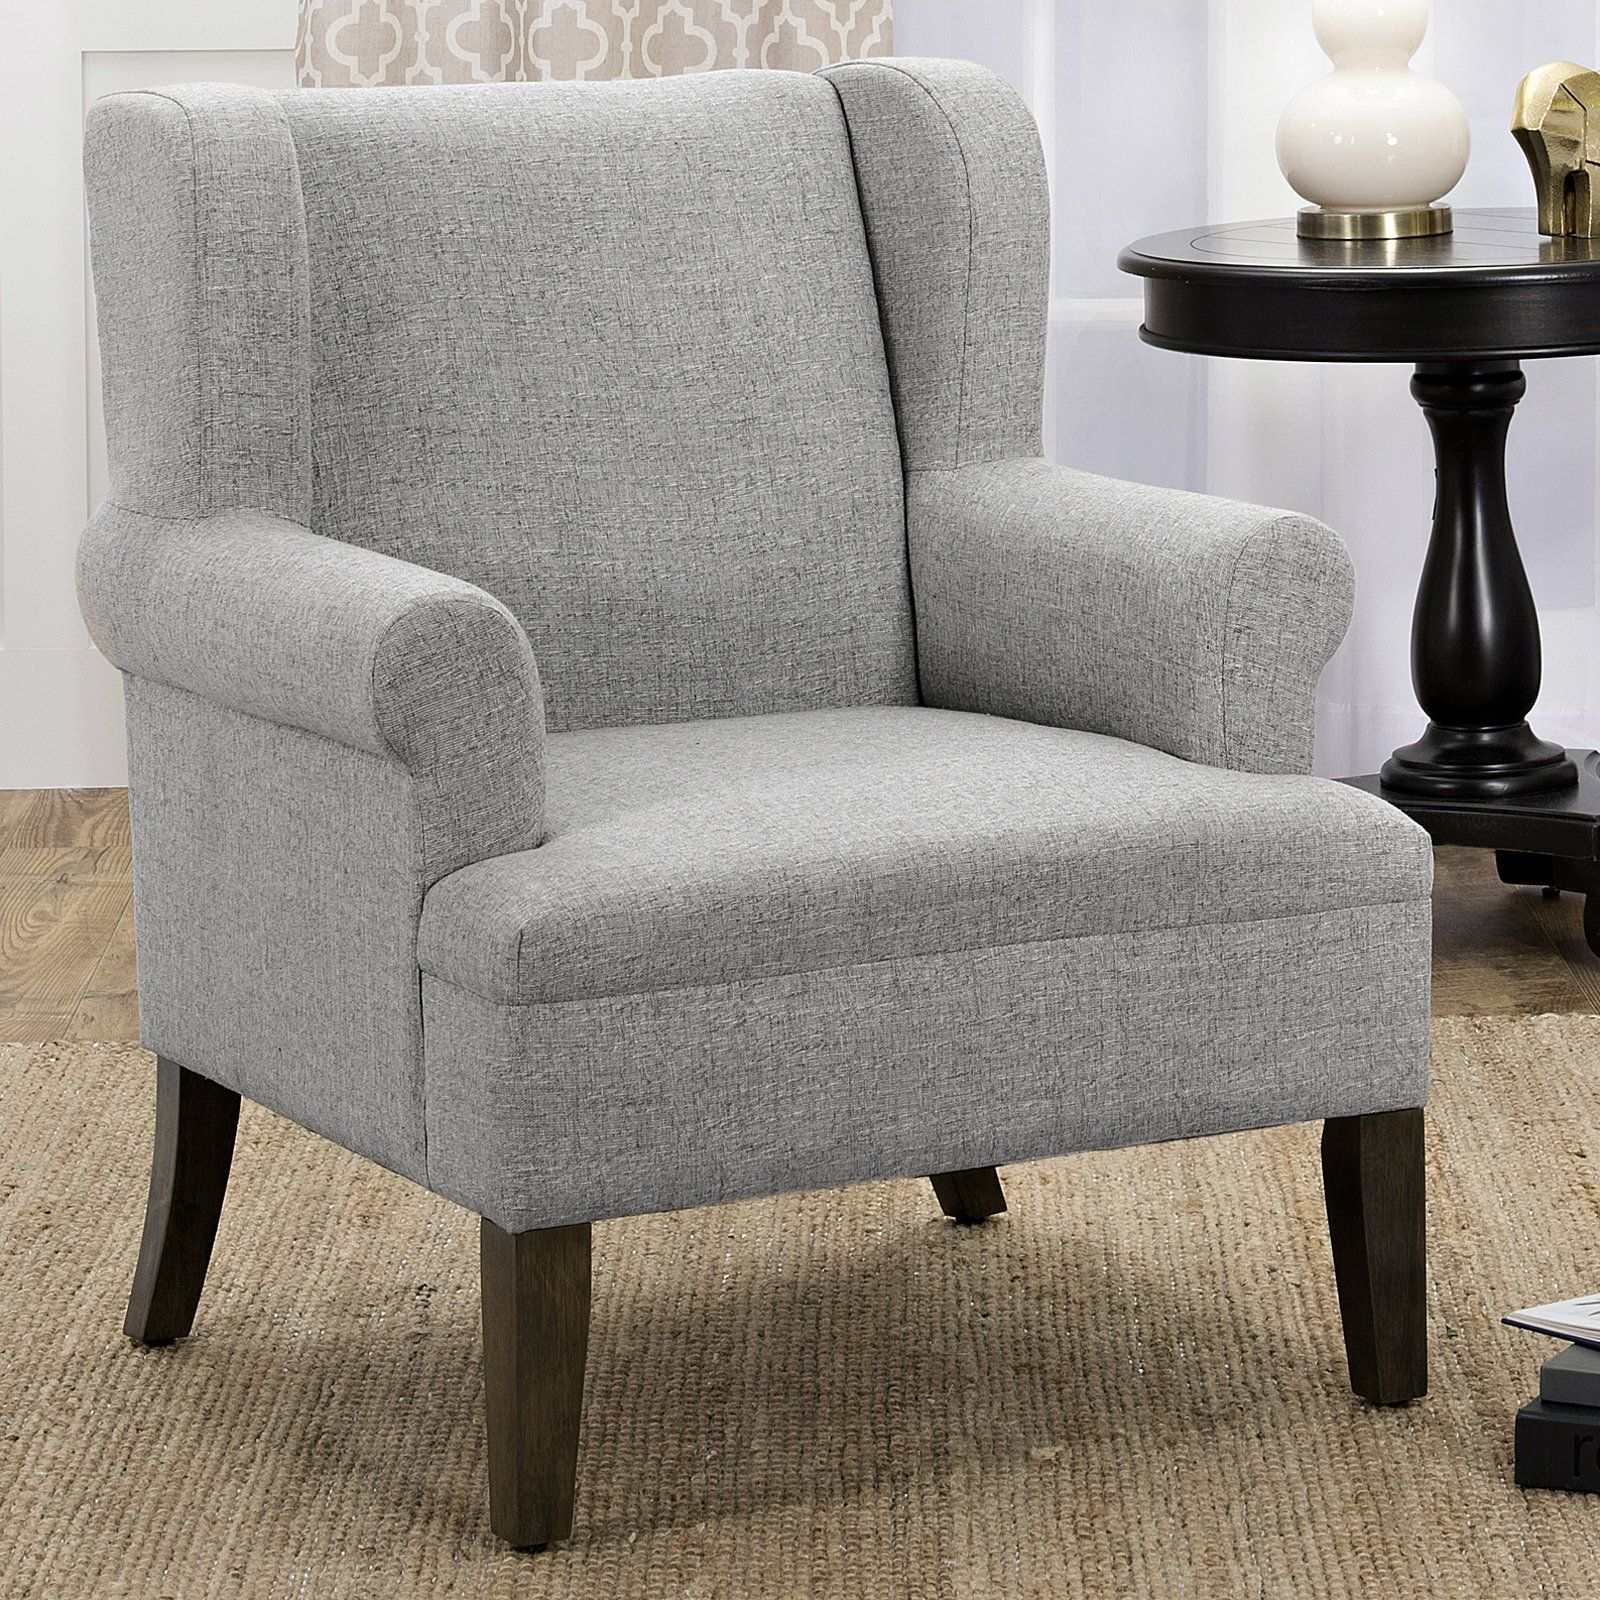 HomePop Emerson Wingback Accent Chair - K6699-F2099 | Products ...